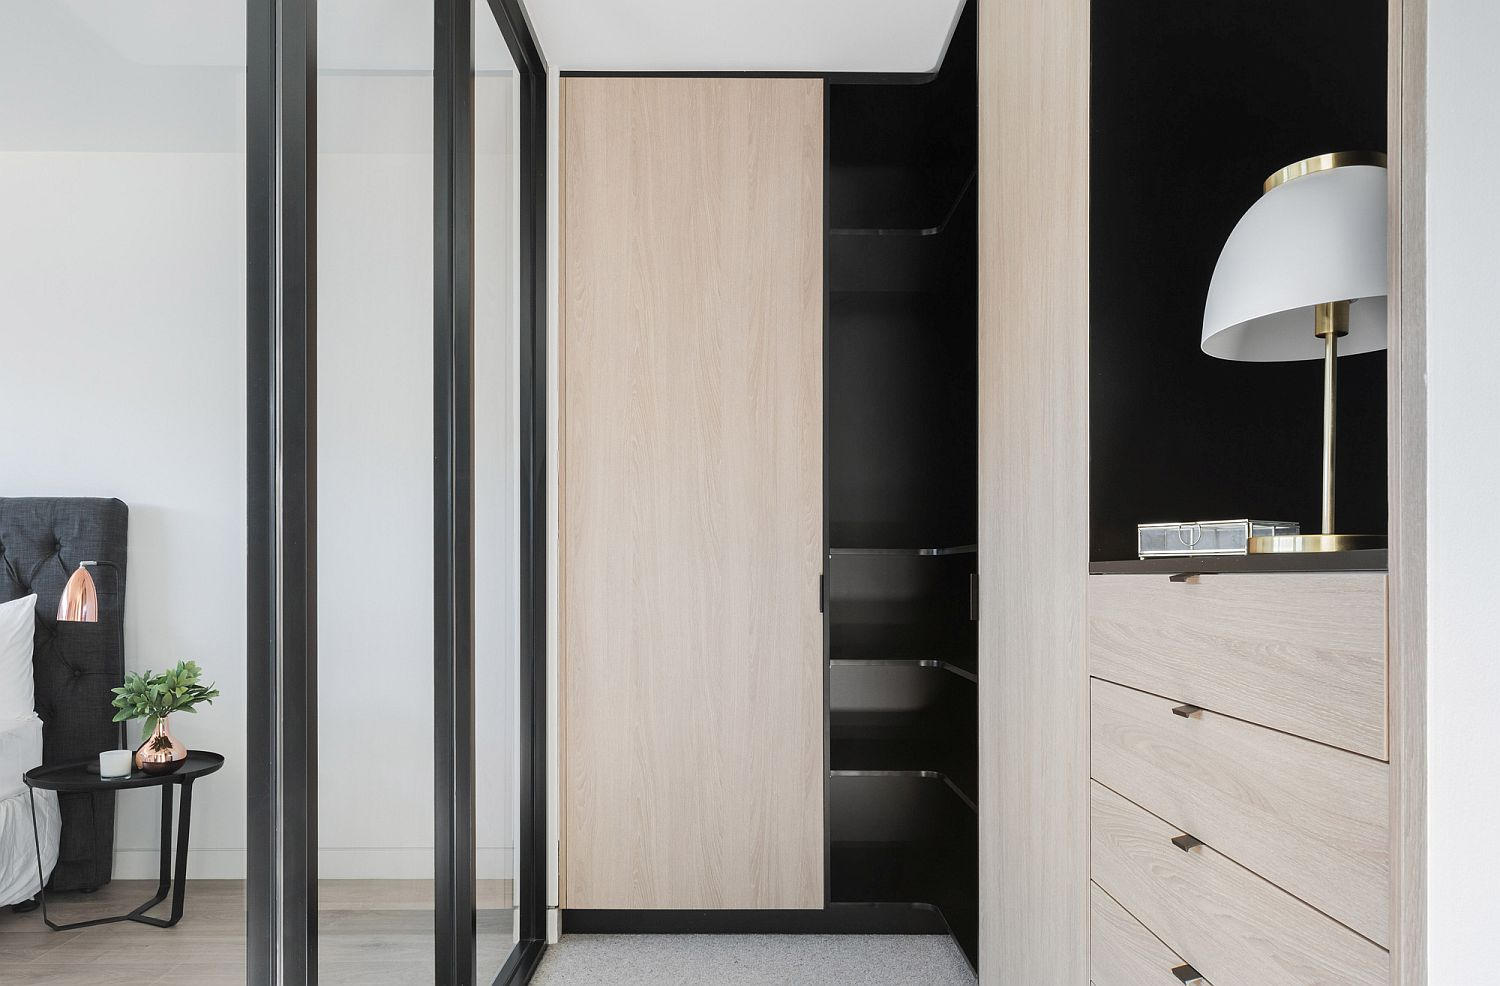 Wood-and-black-add-contrast-to-the-white-interior